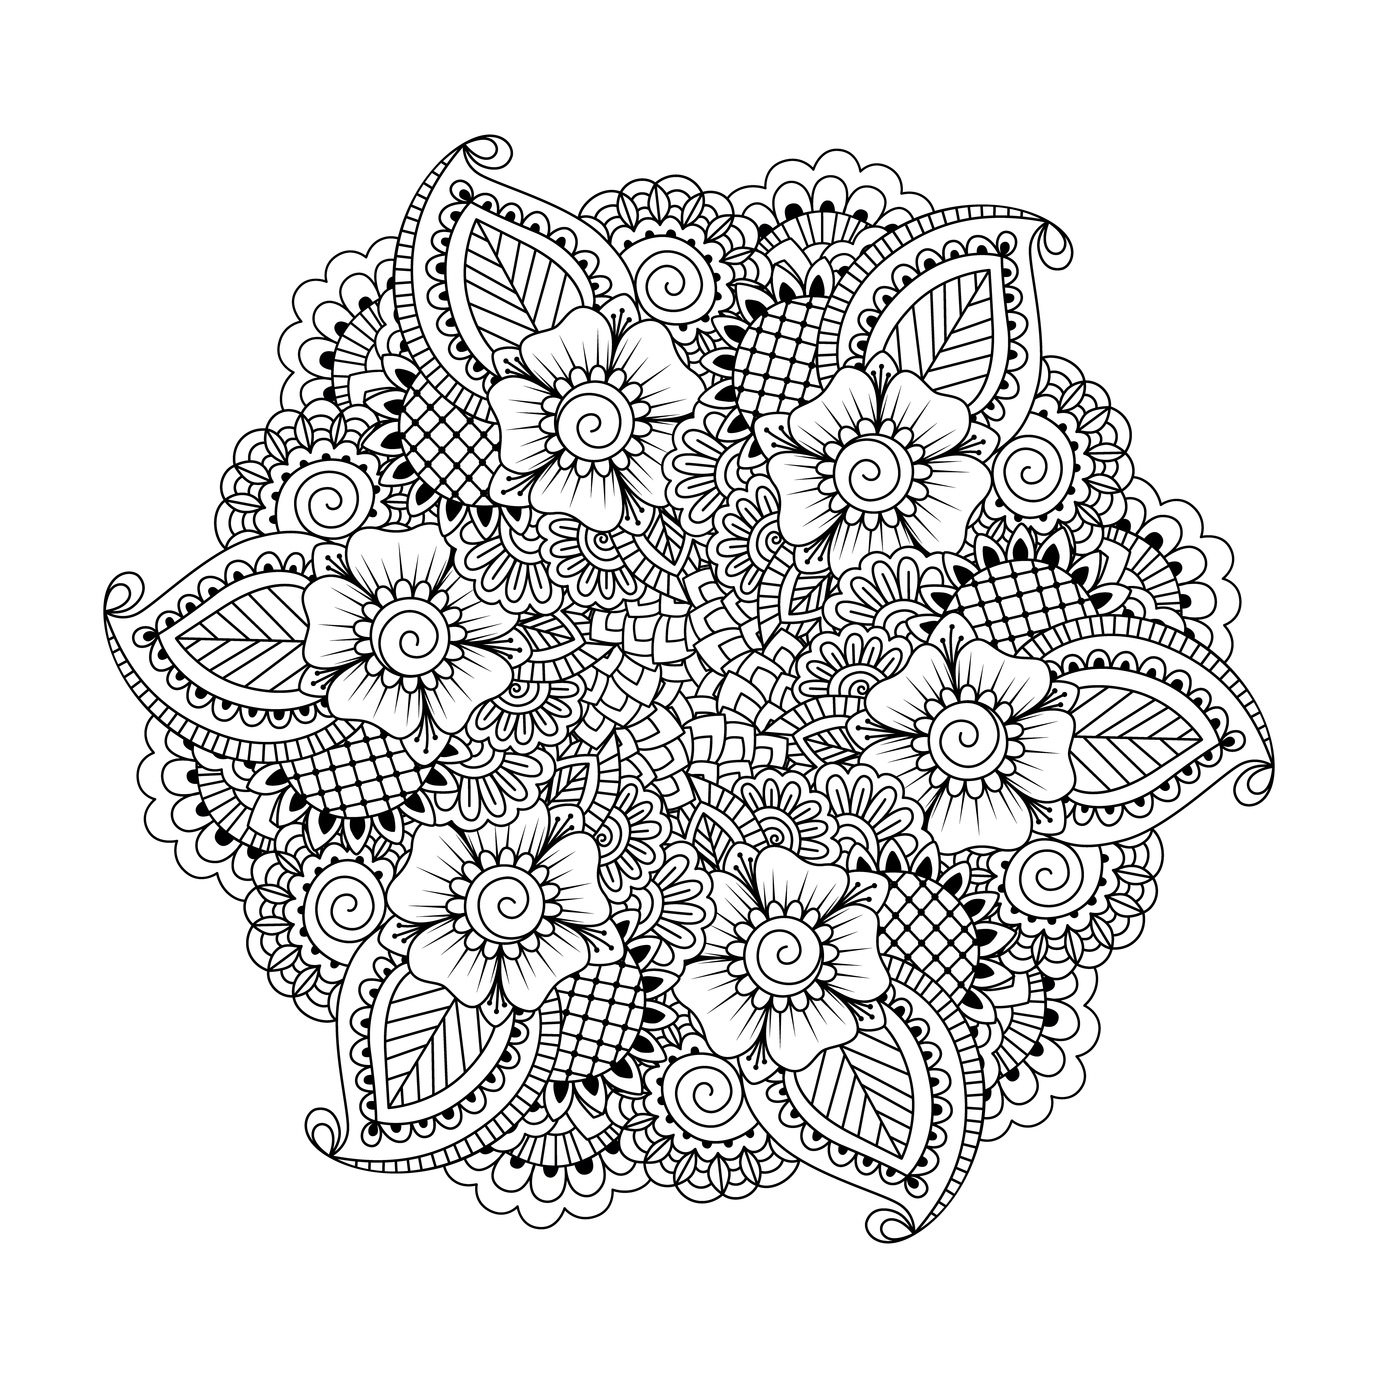 mandala meditation coloring pages 29 printable mandala abstract colouring pages for meditation coloring pages mandala